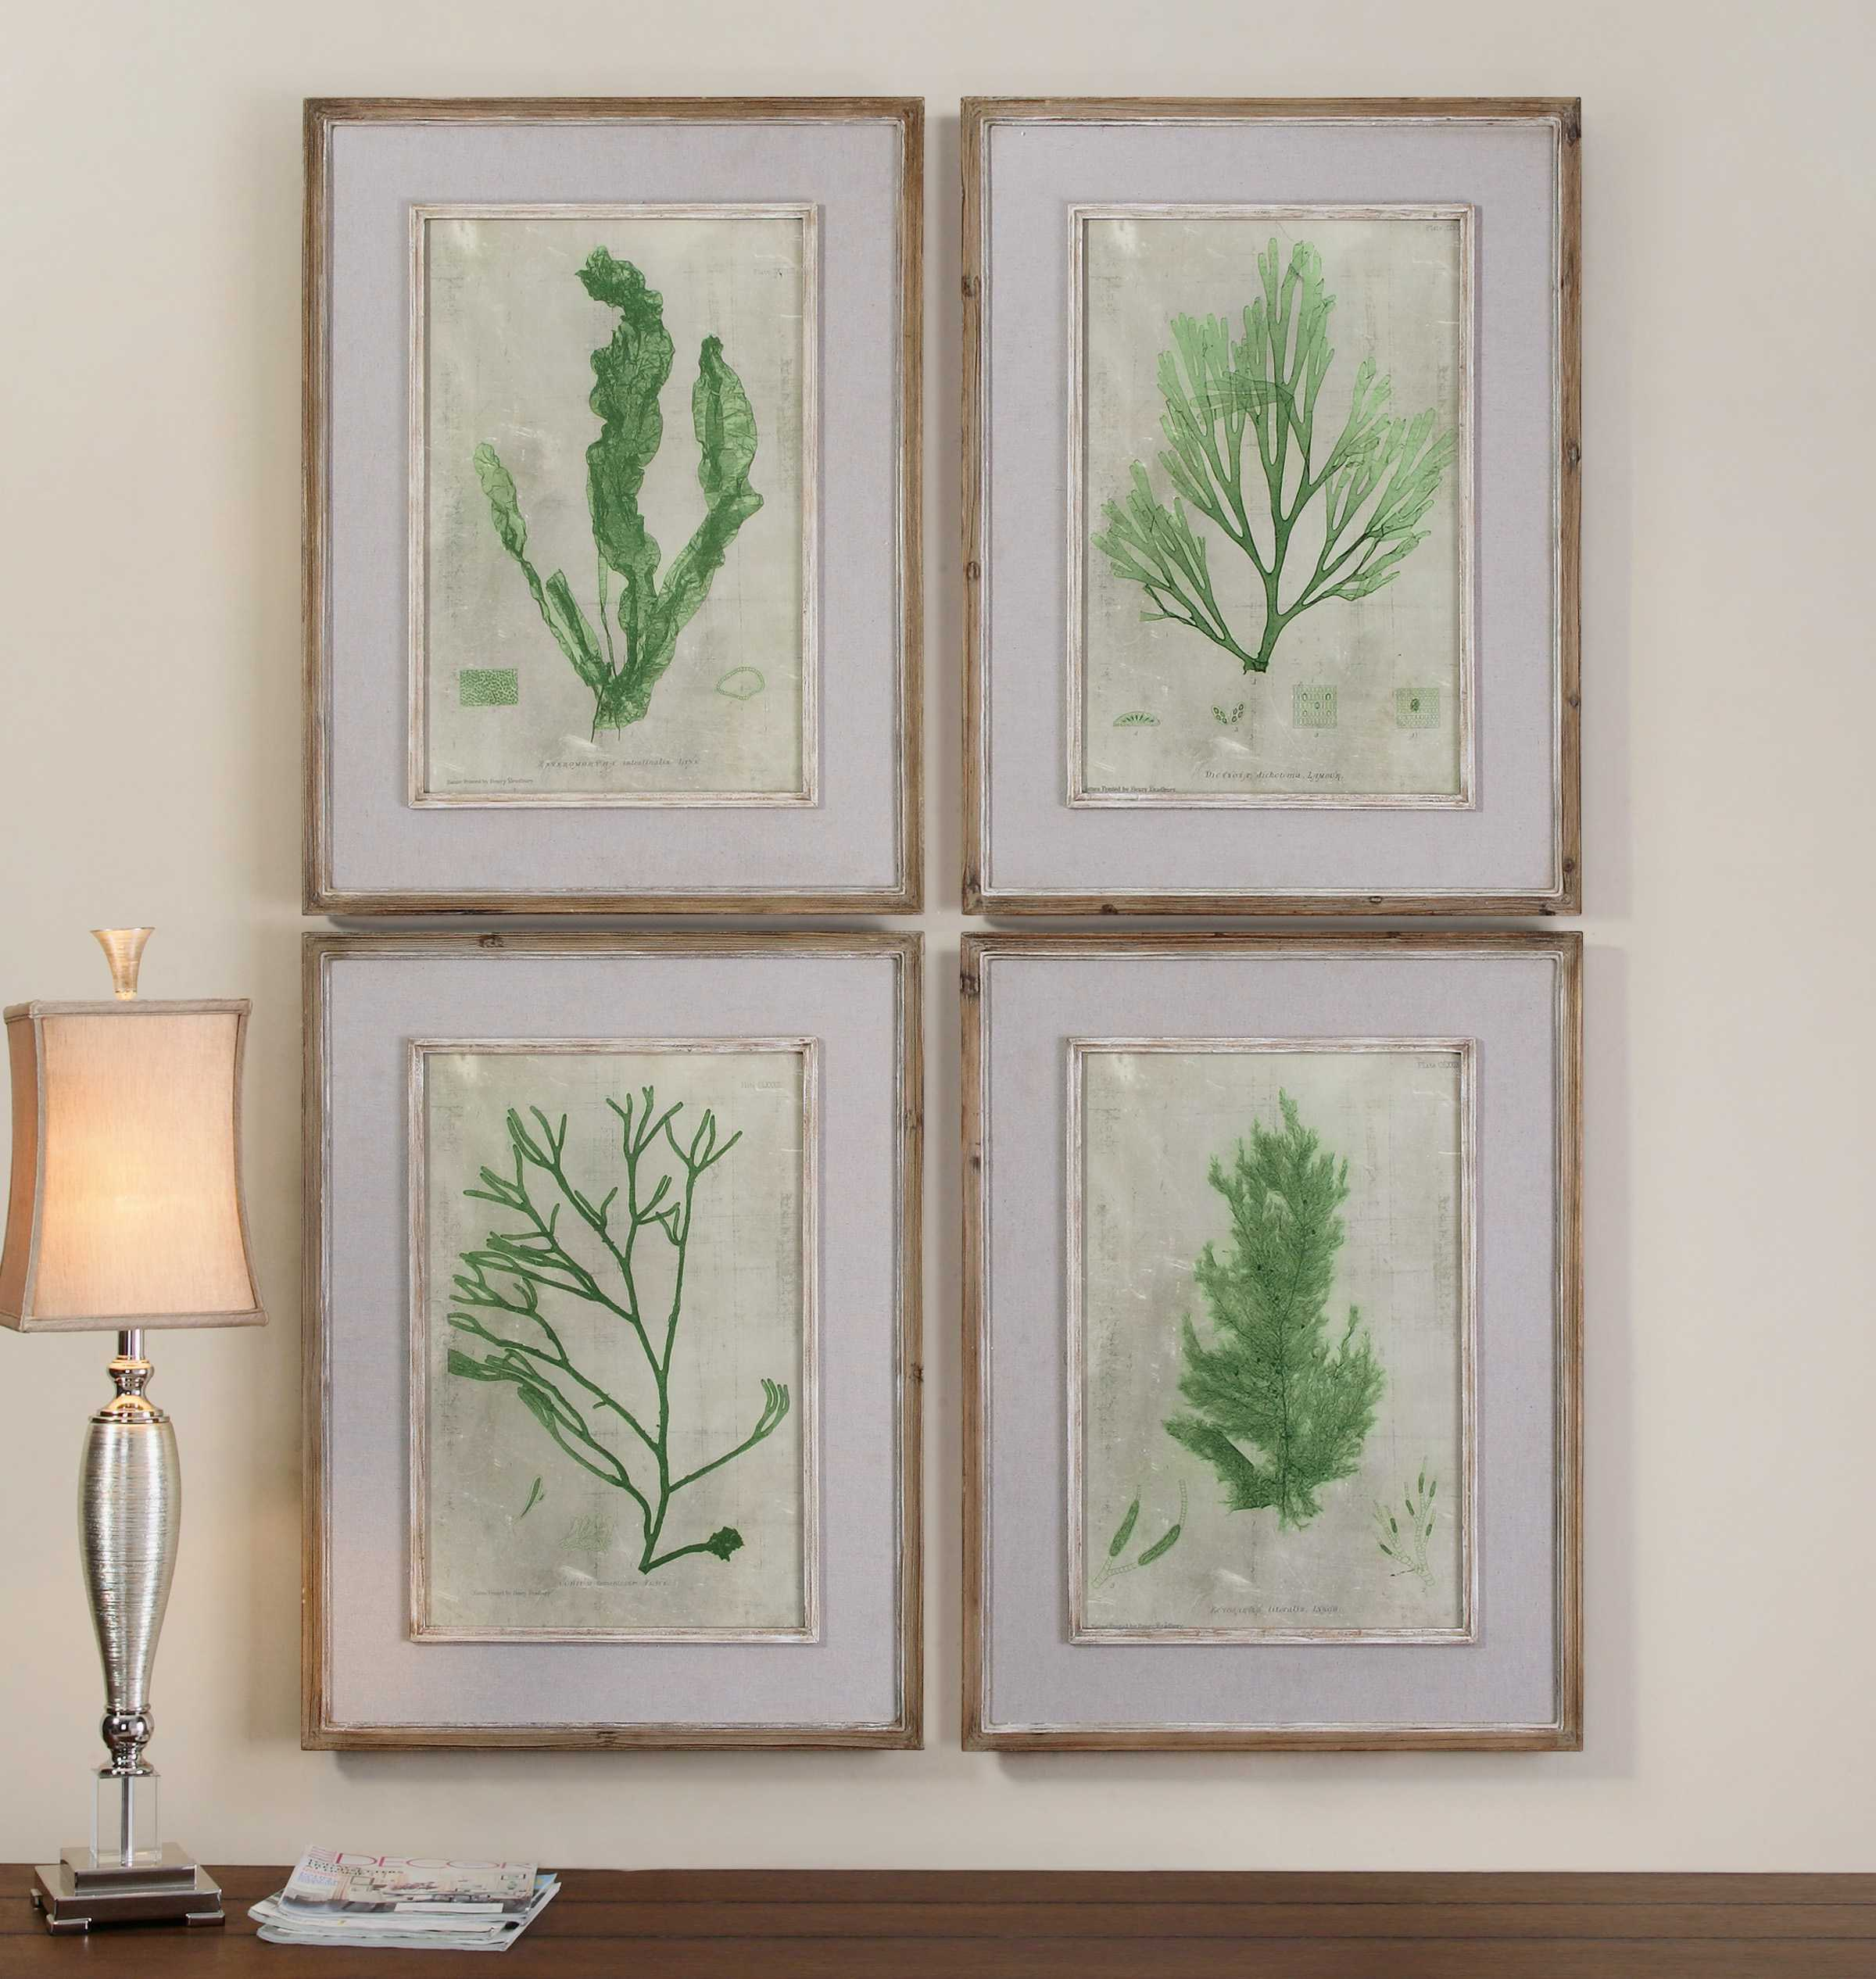 Best Uttermost Emerald Seaweed Framed Wall Art 4 Piece Set This Month